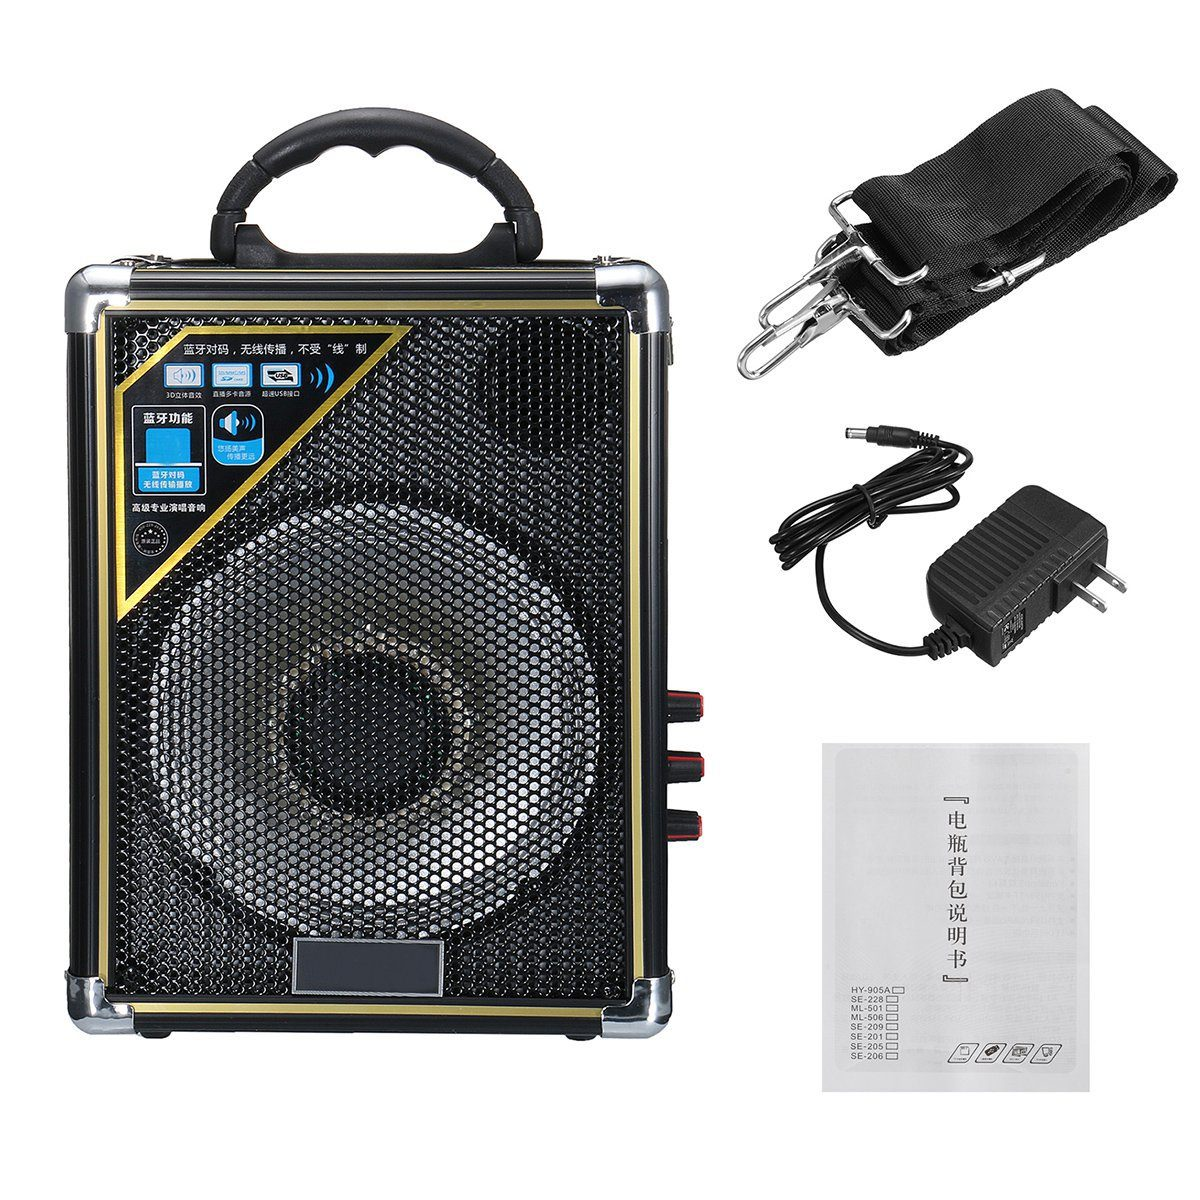 Outdoor Portable Bluetooth Speaker LED Light Rechargeable Audio Player USB Play Radio Stereo Stage Dance Speaker SubwooferOutdoor Portable Bluetooth Speaker LED Light Rechargeable Audio Player USB Play Radio Stereo Stage Dance Speaker Subwoofer